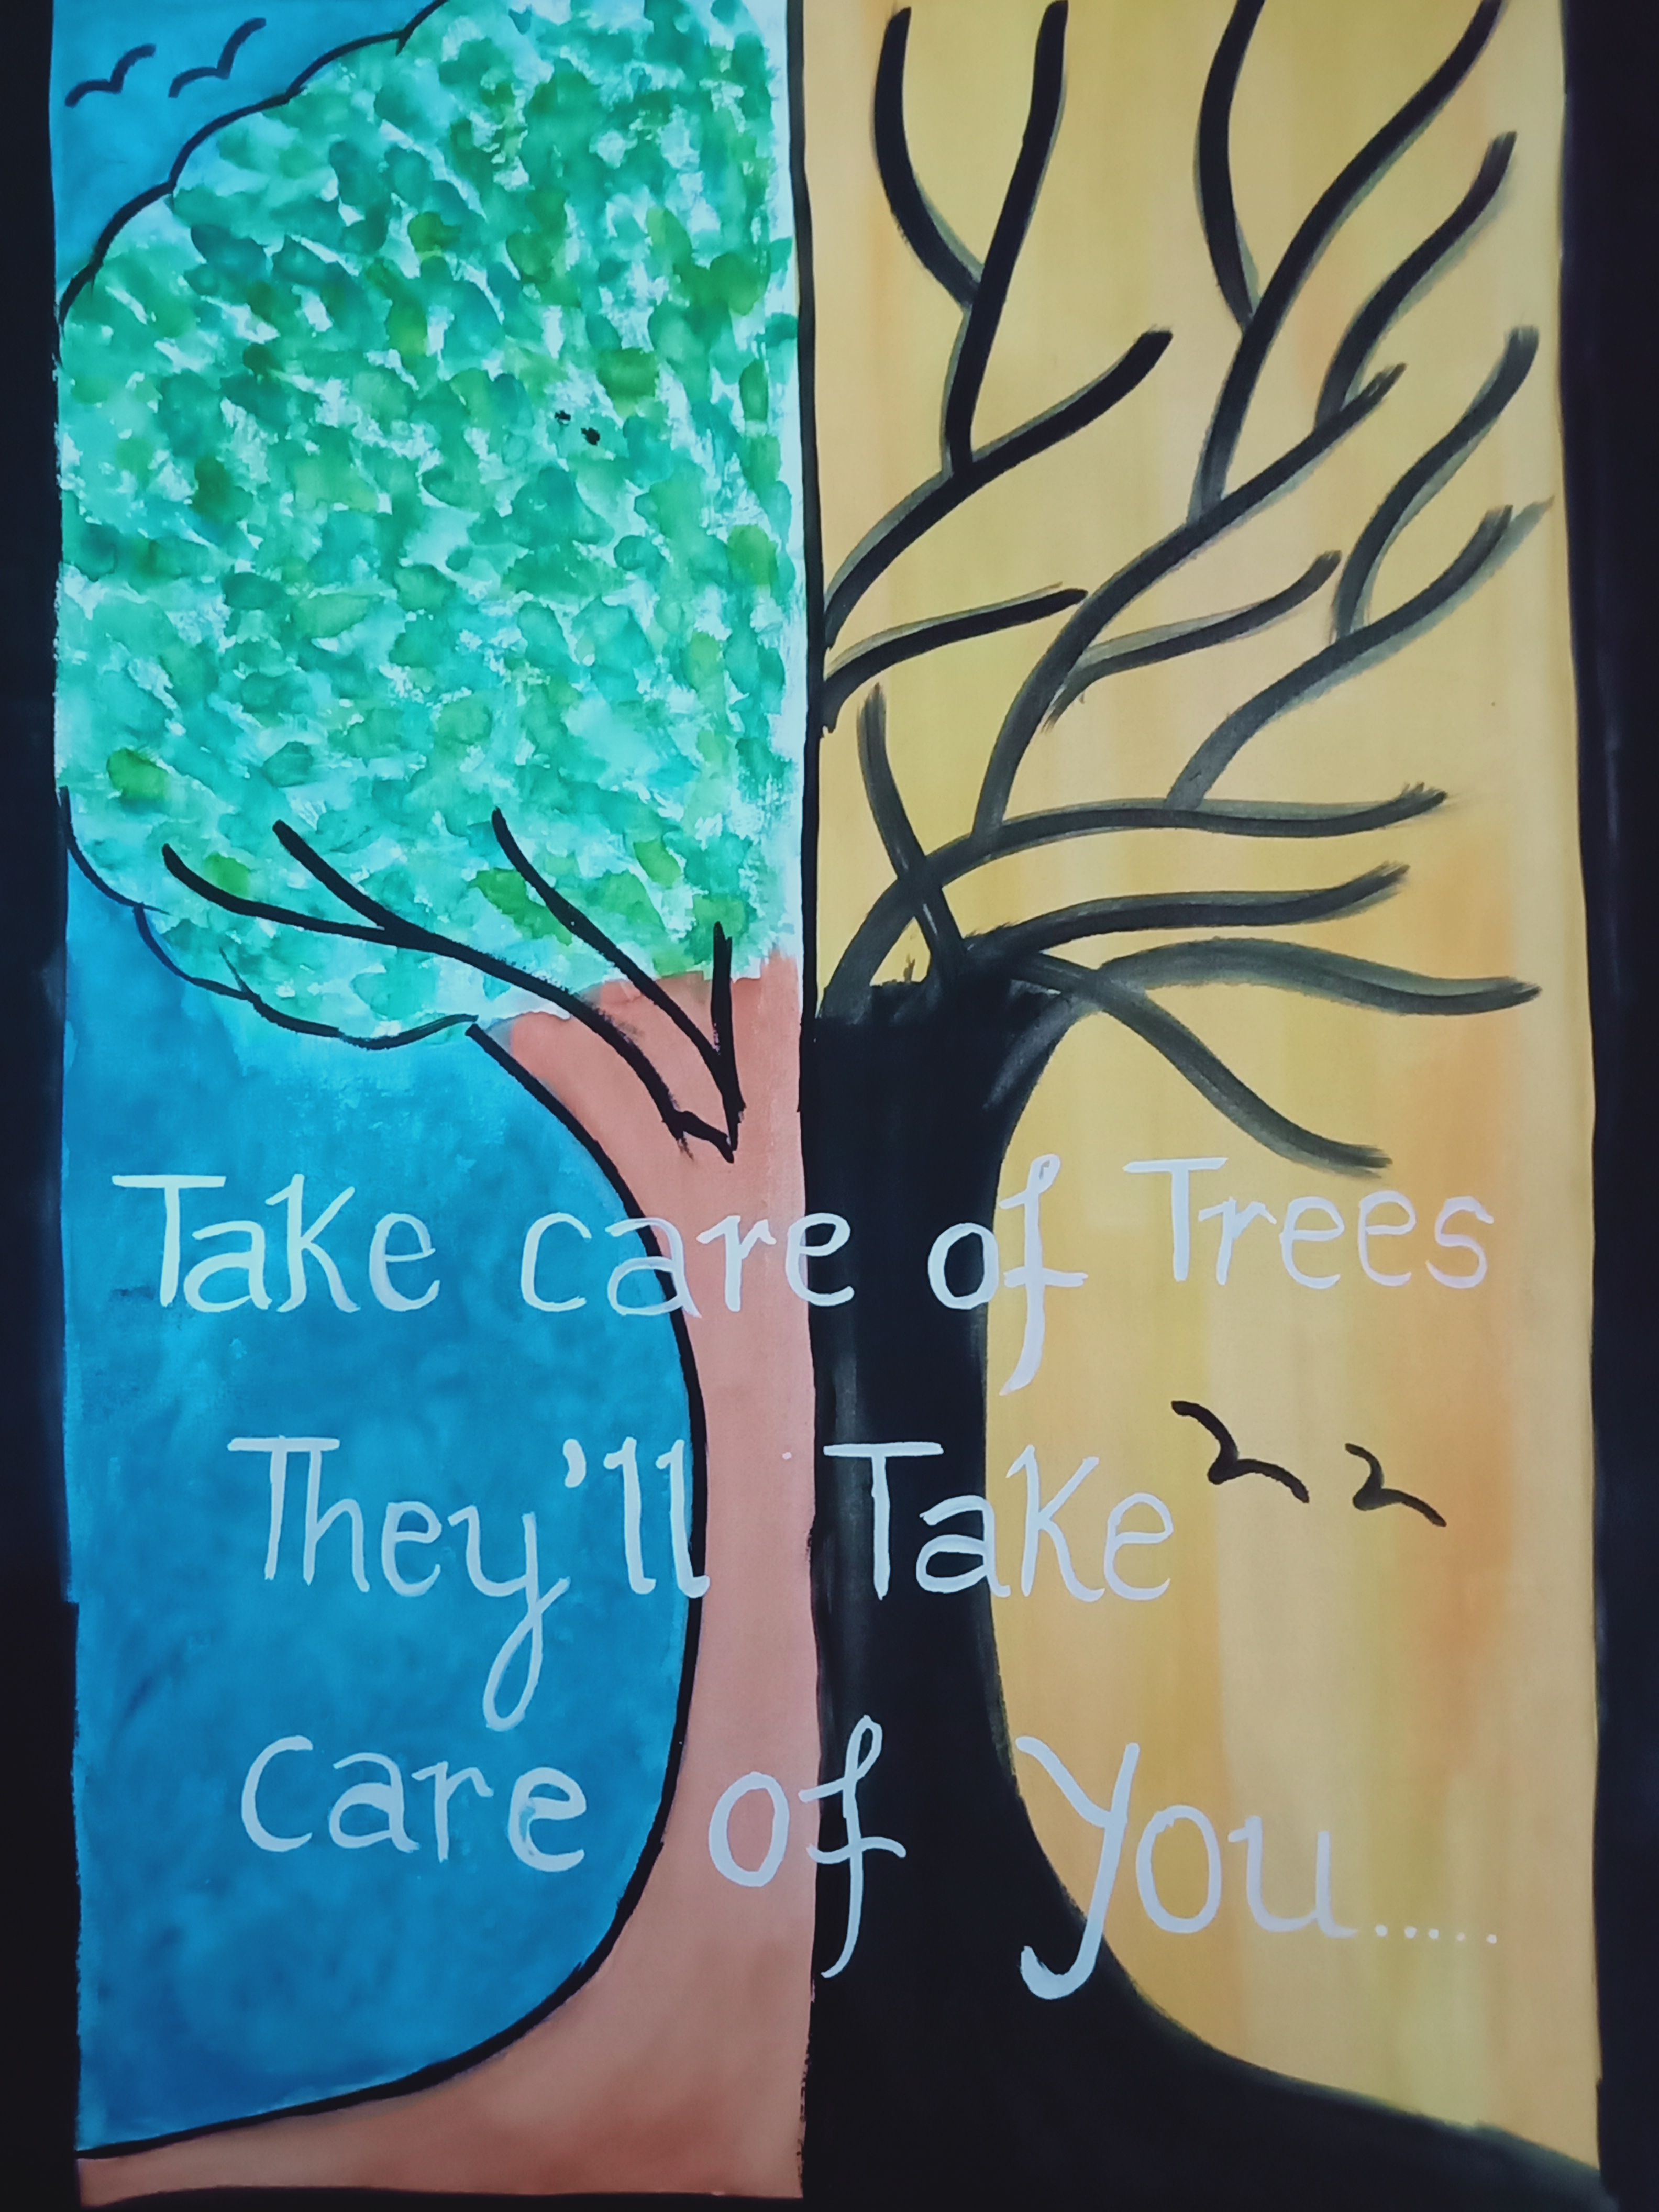 Pin By Jennifer Matuszak On Klove Tree Drawing For Kids Save Trees Slogans Save Earth Posters